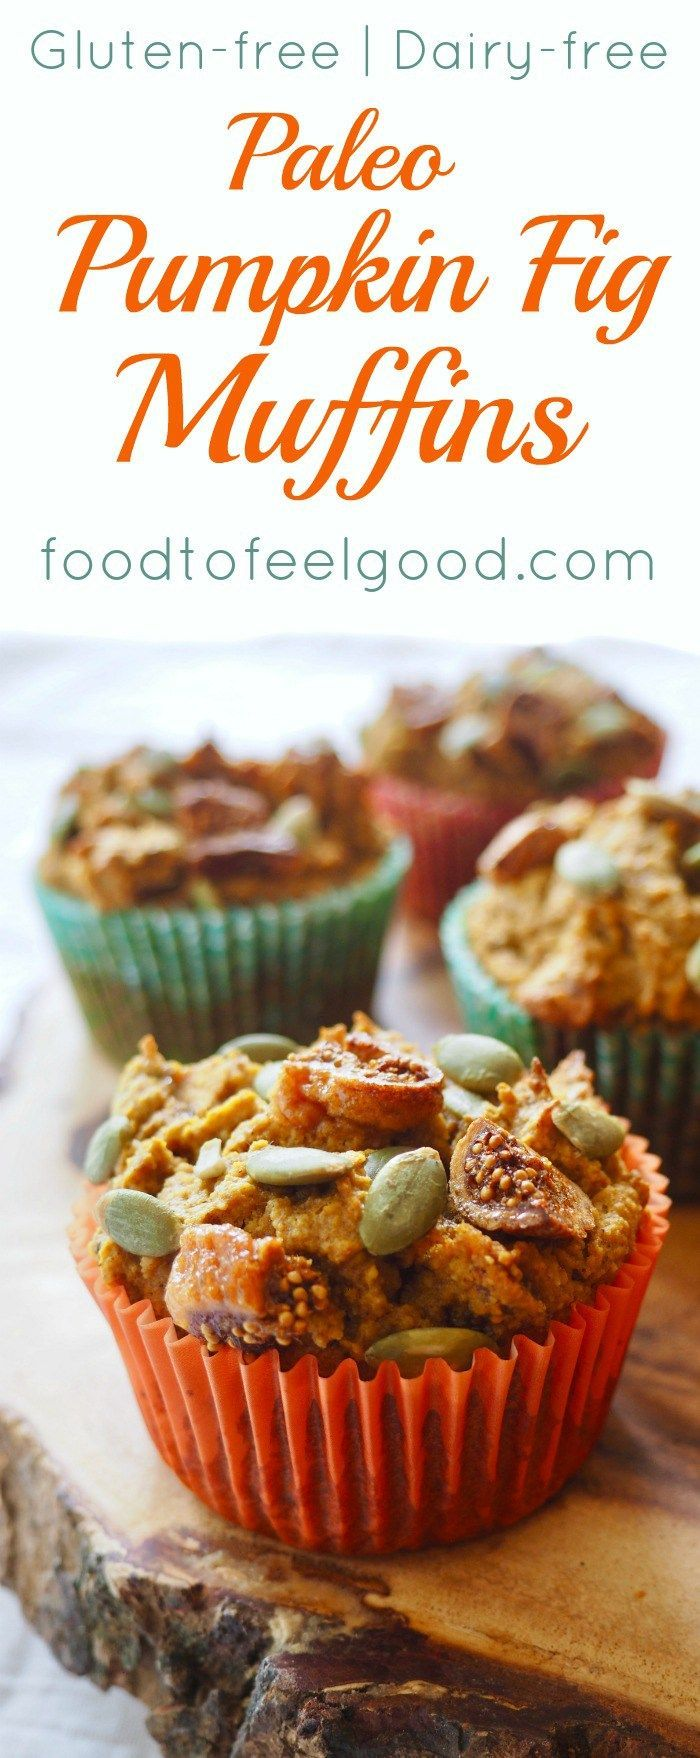 Paleo Pumpkin Fig Muffins | These soft, fluffy, paleo muffins are just slightly sweet with the perfect amount of spice, tons of protein and super healthy! #paleo #healthyrecipes #glutenfree #pumpkinspice